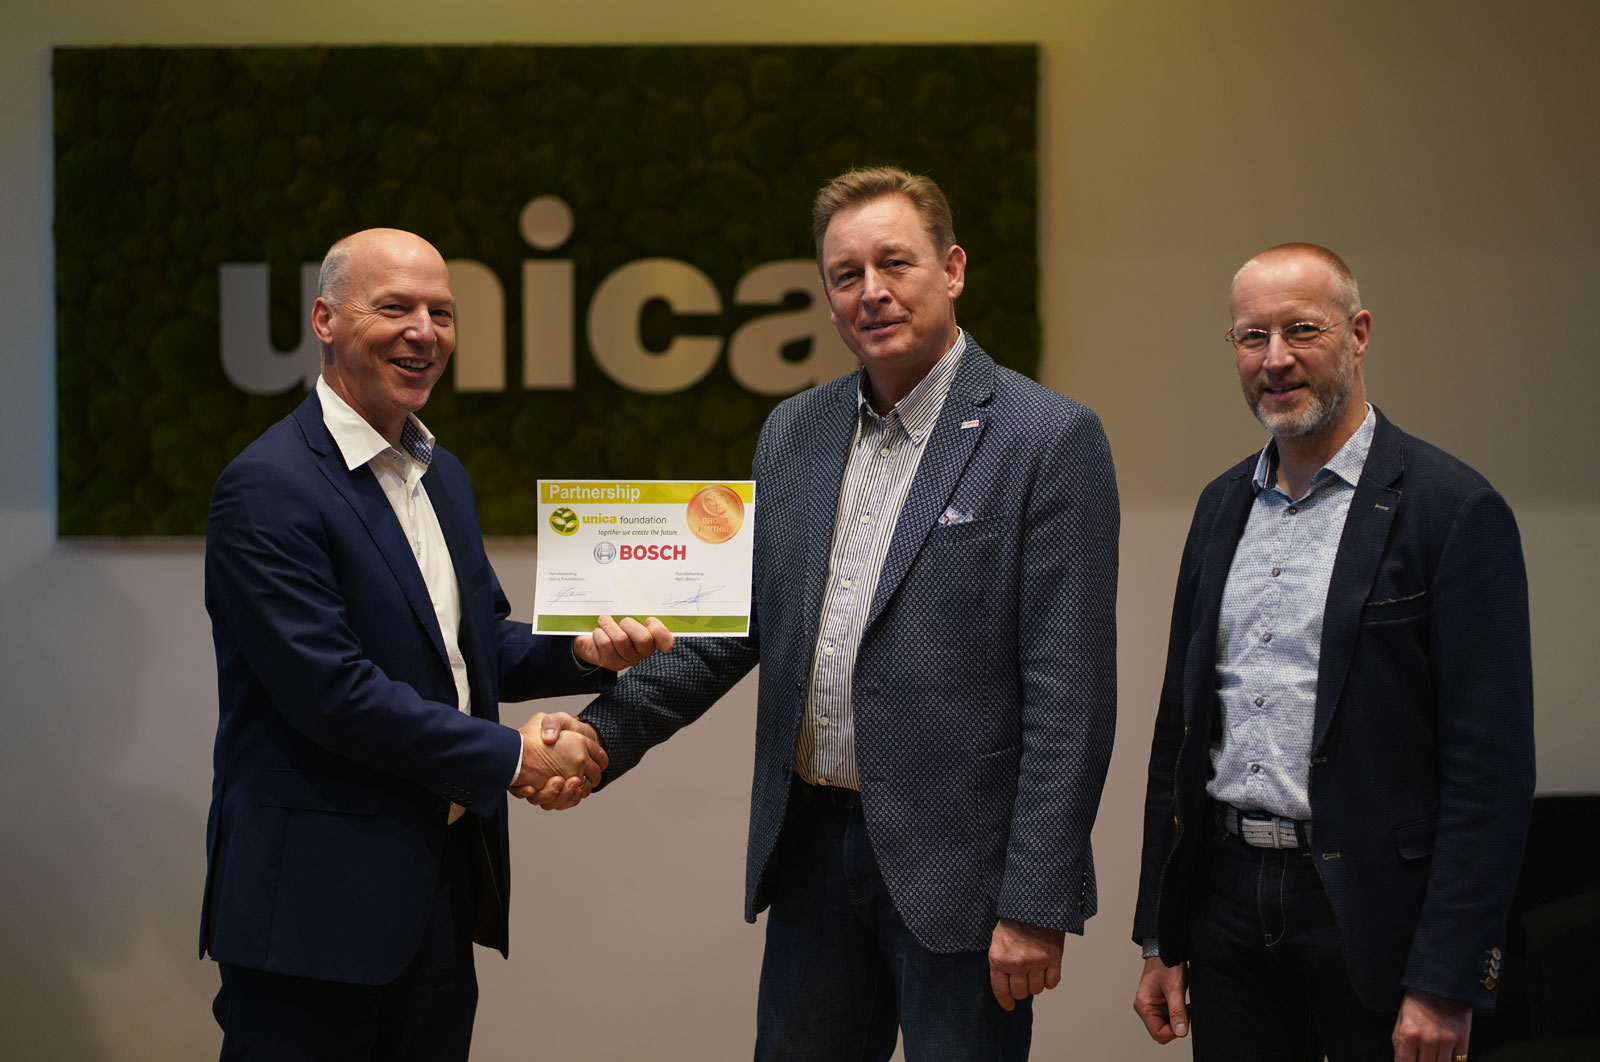 Contractondertekening partnership Bosch en Unica Foundation